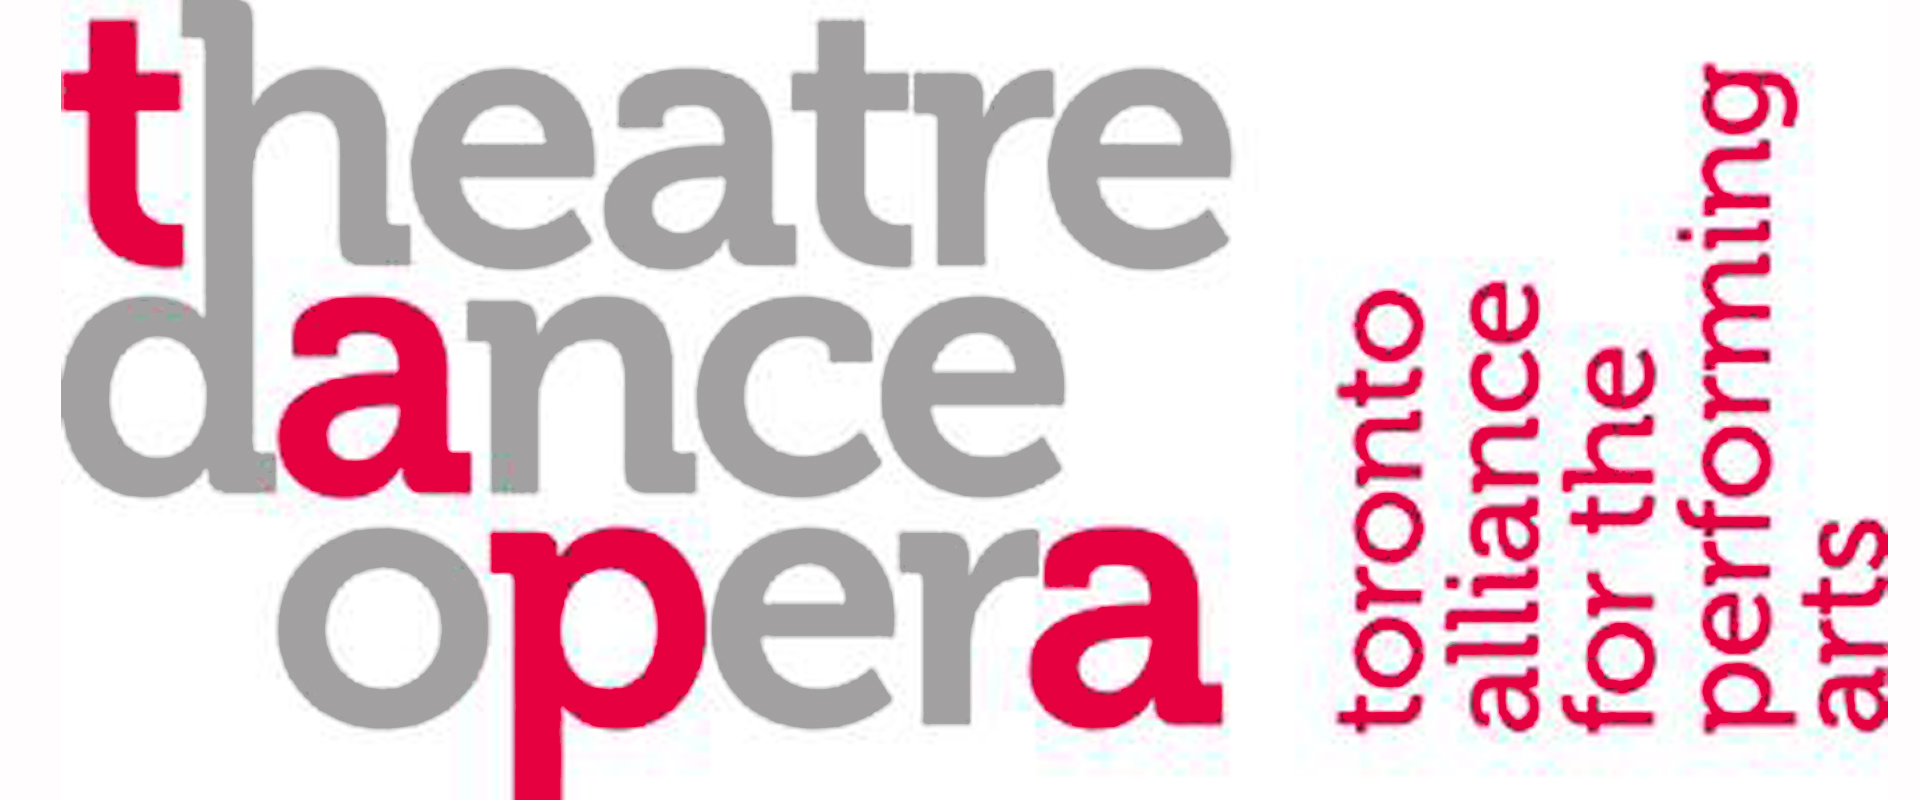 Announcement - [04/18/2019] Now Open new Theatre Space, Sweet Action Theatre Company